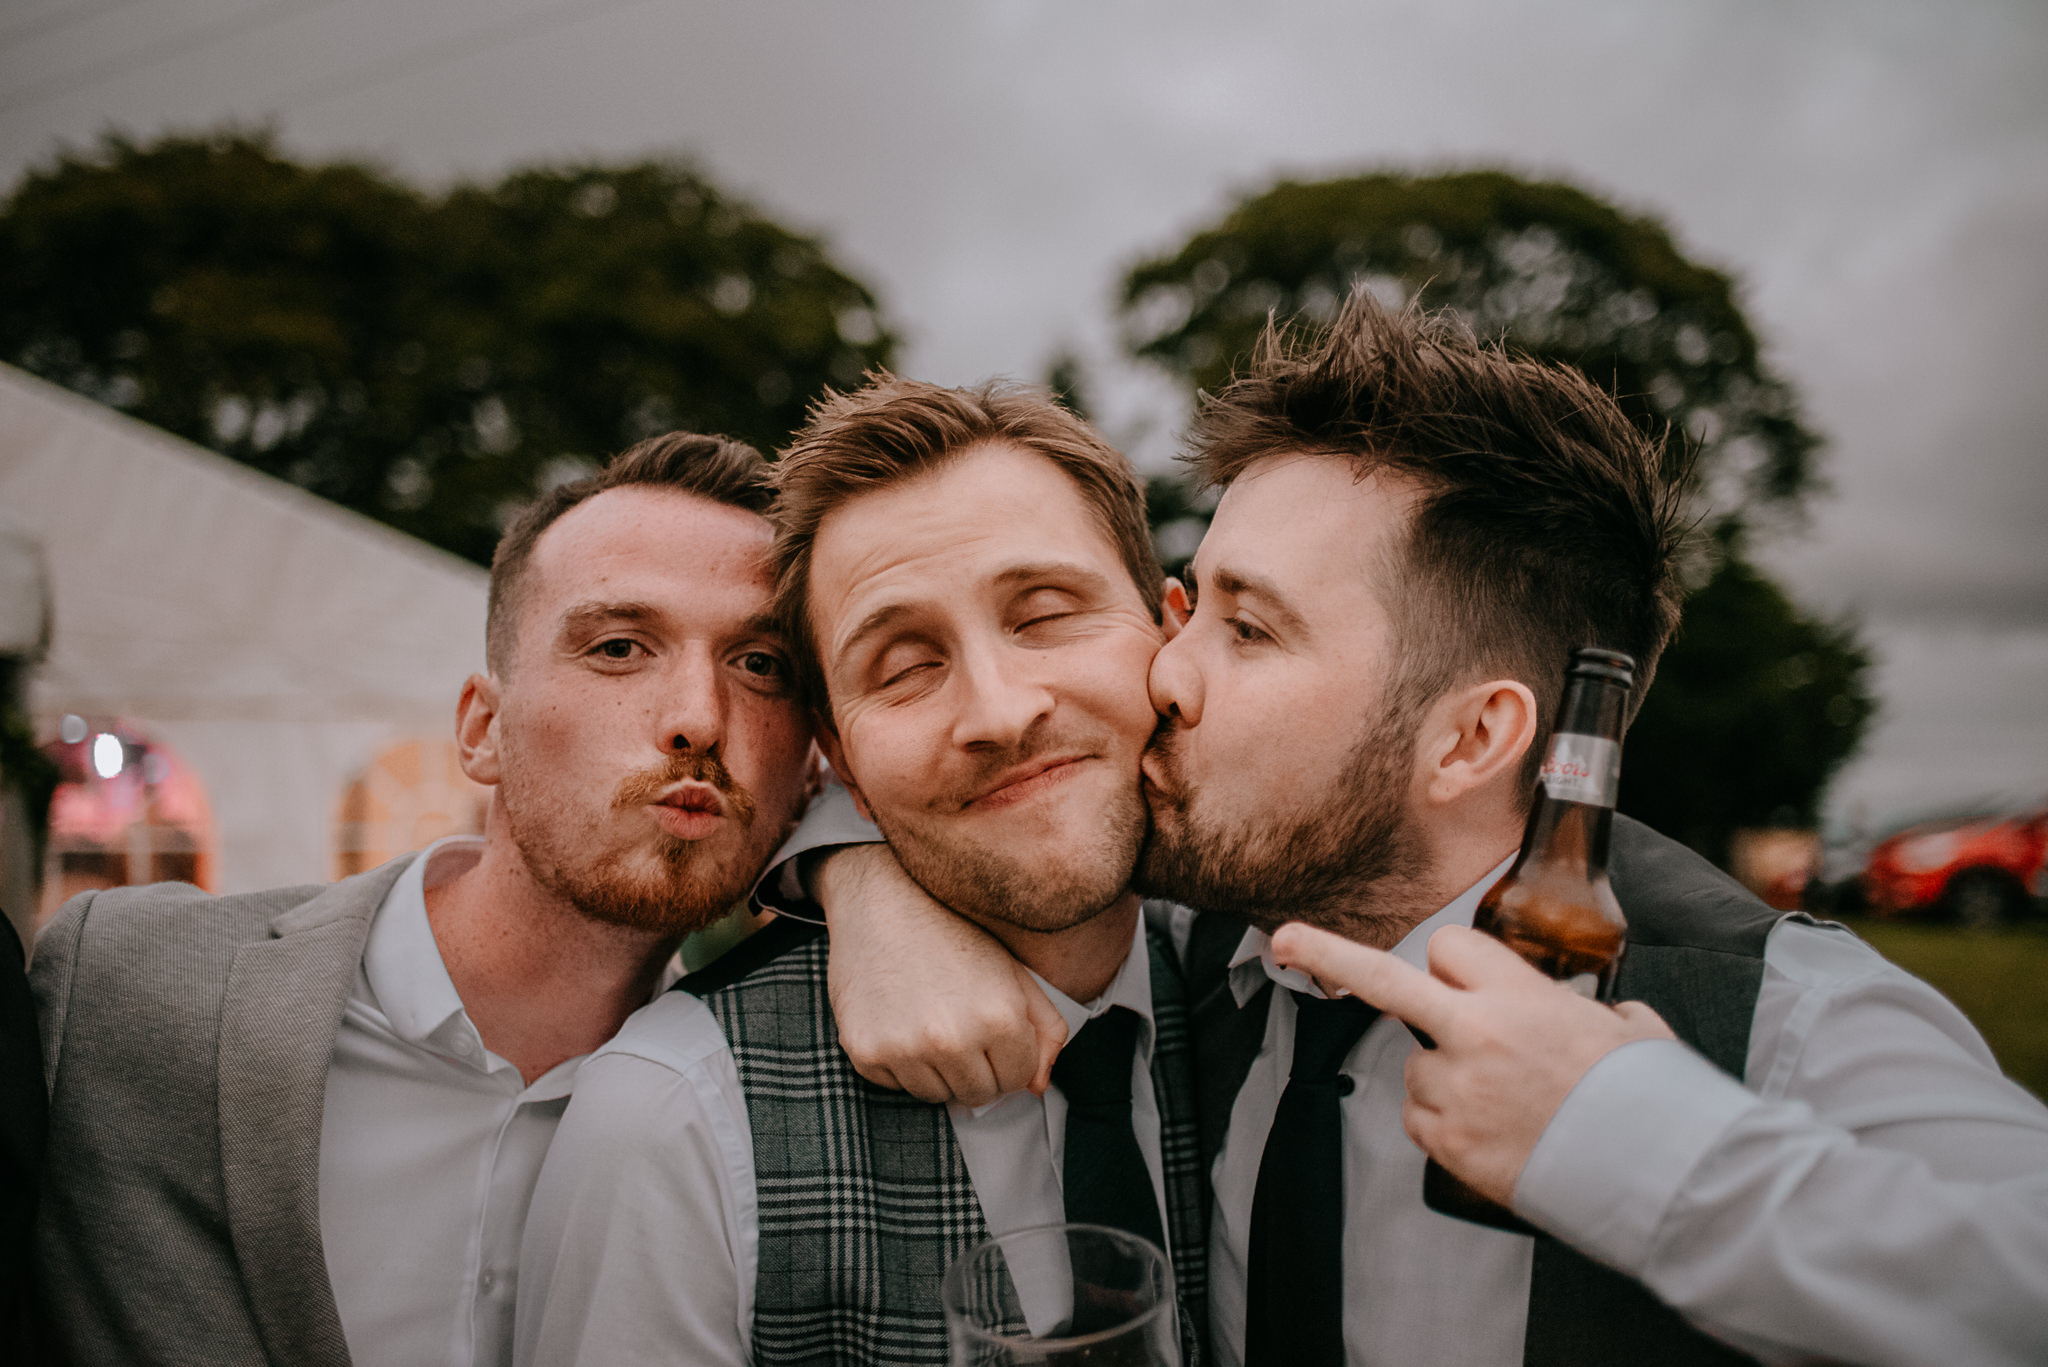 groom and guests silly wedding reception outdoors